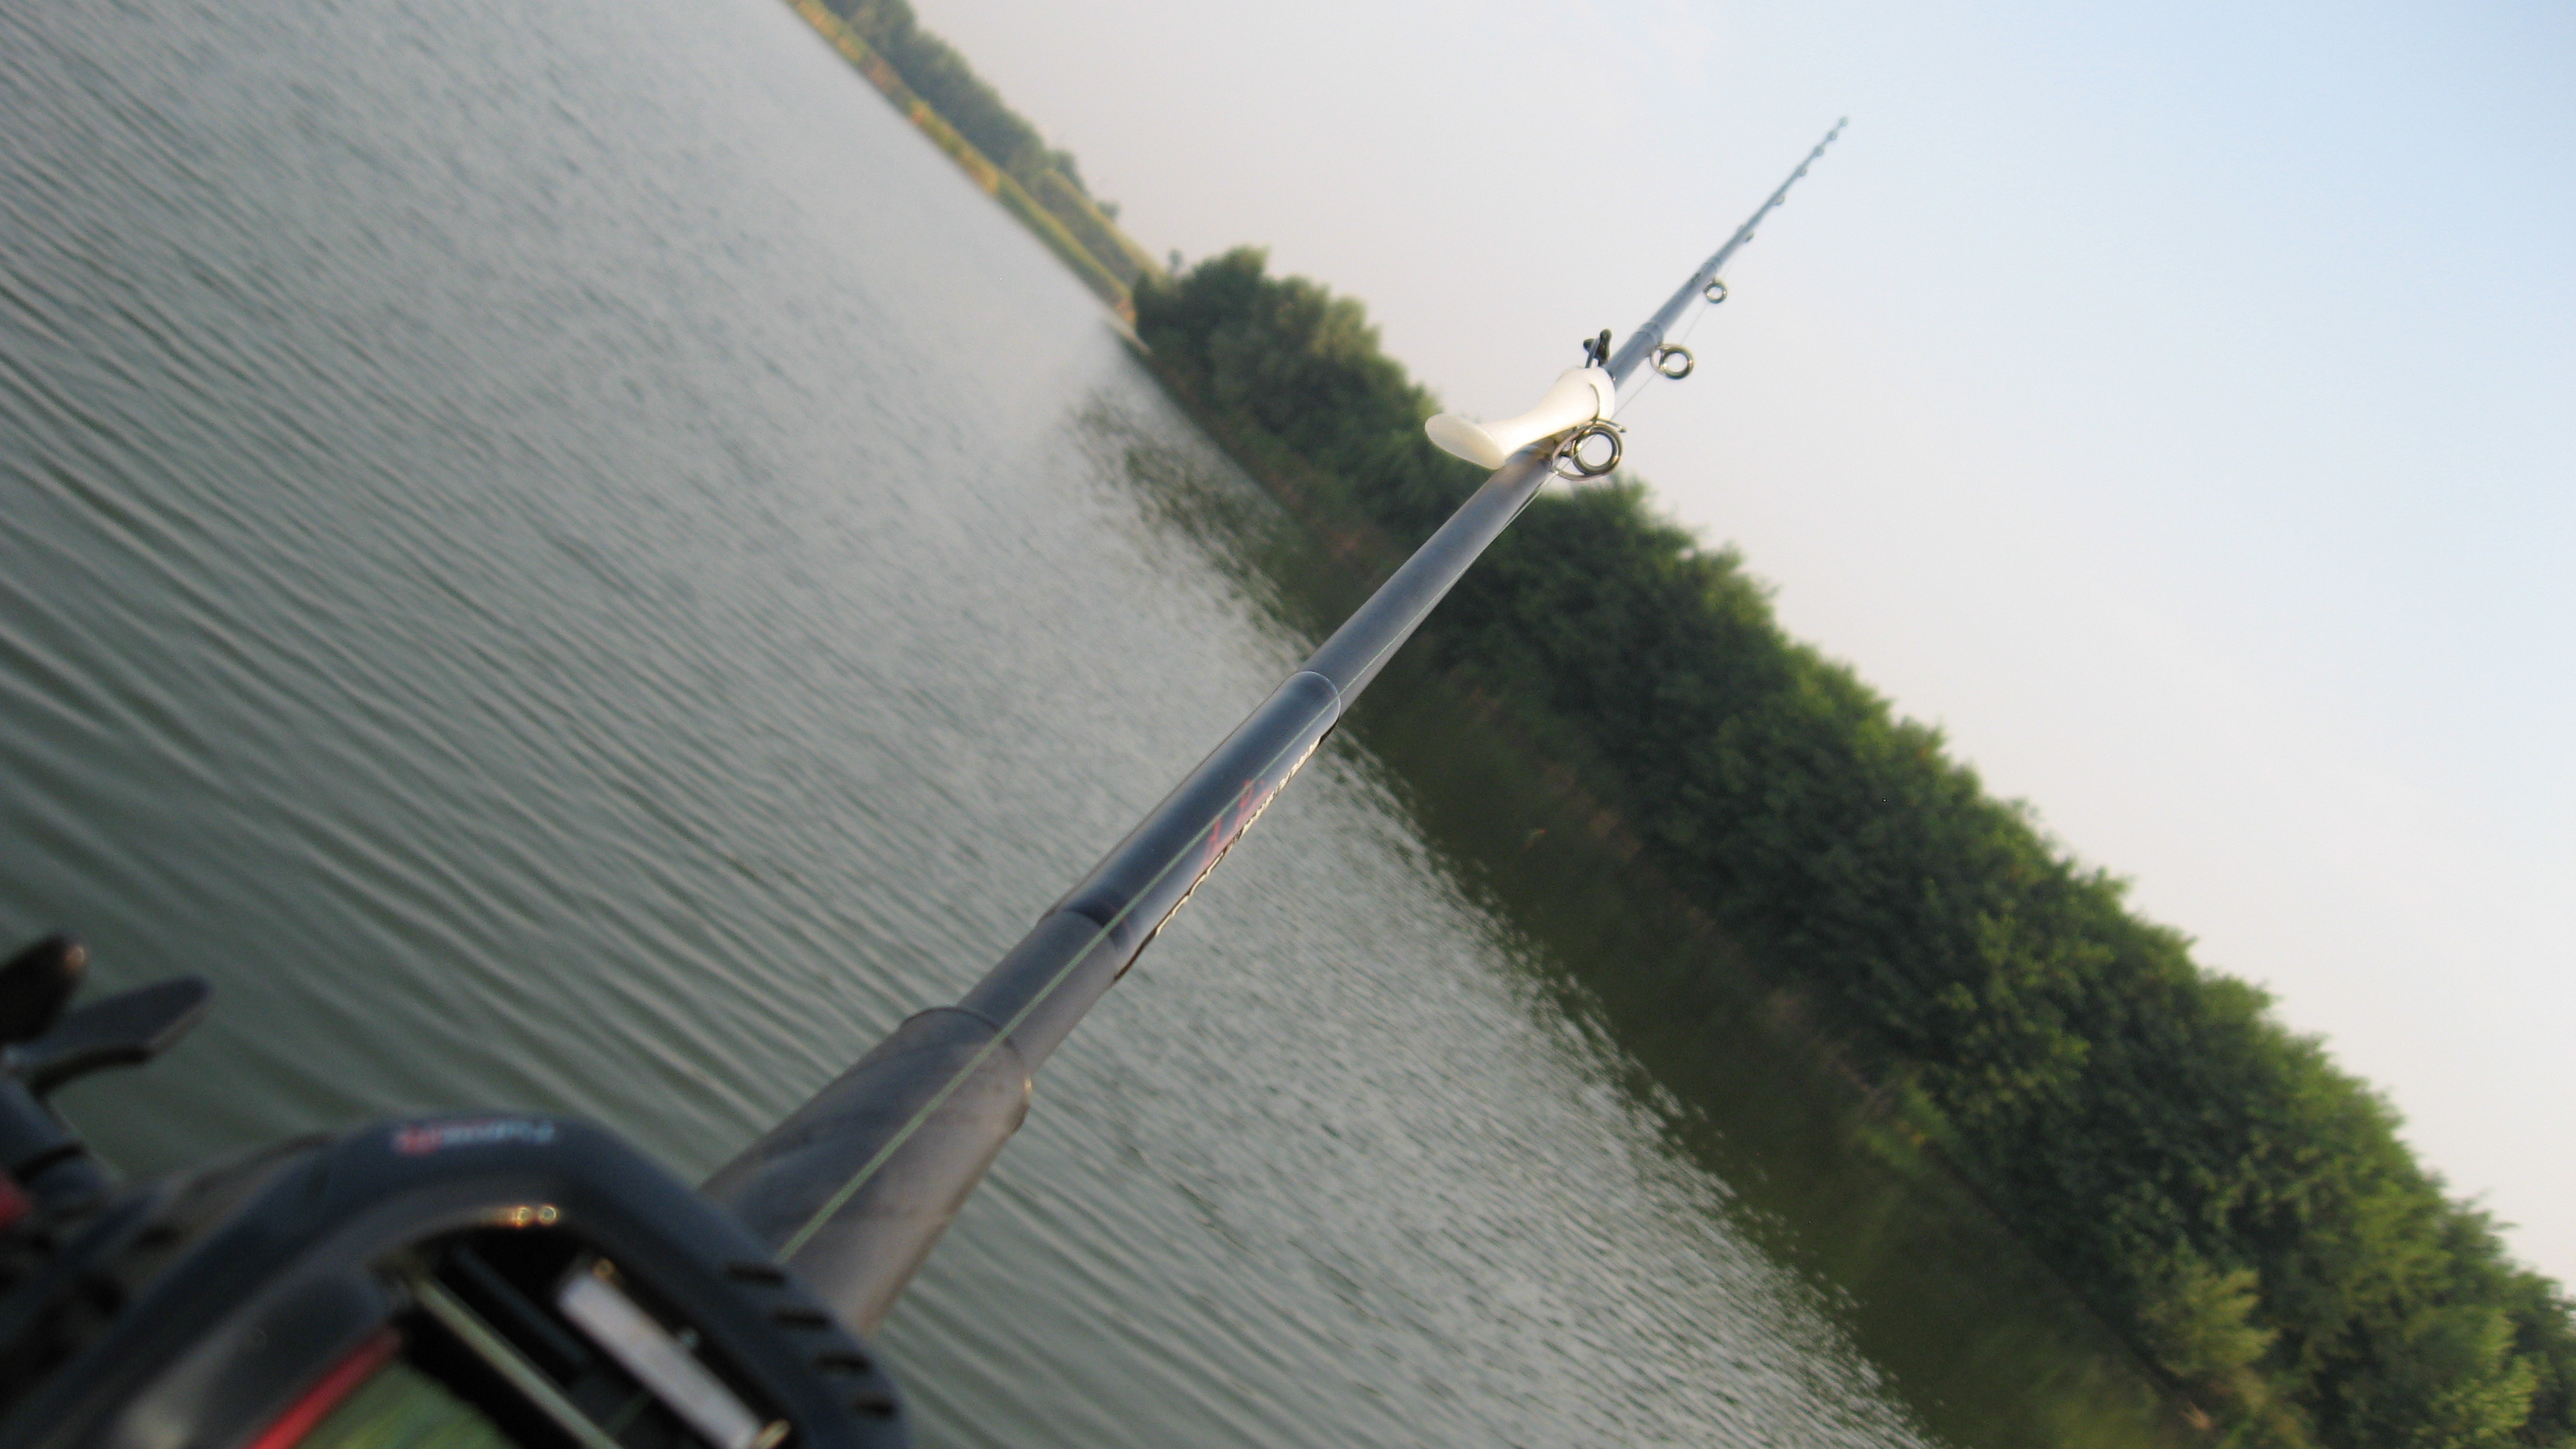 Tomorrow 39 s edge today the edge swim bait 805 1 hm rod by for Edge fishing rods